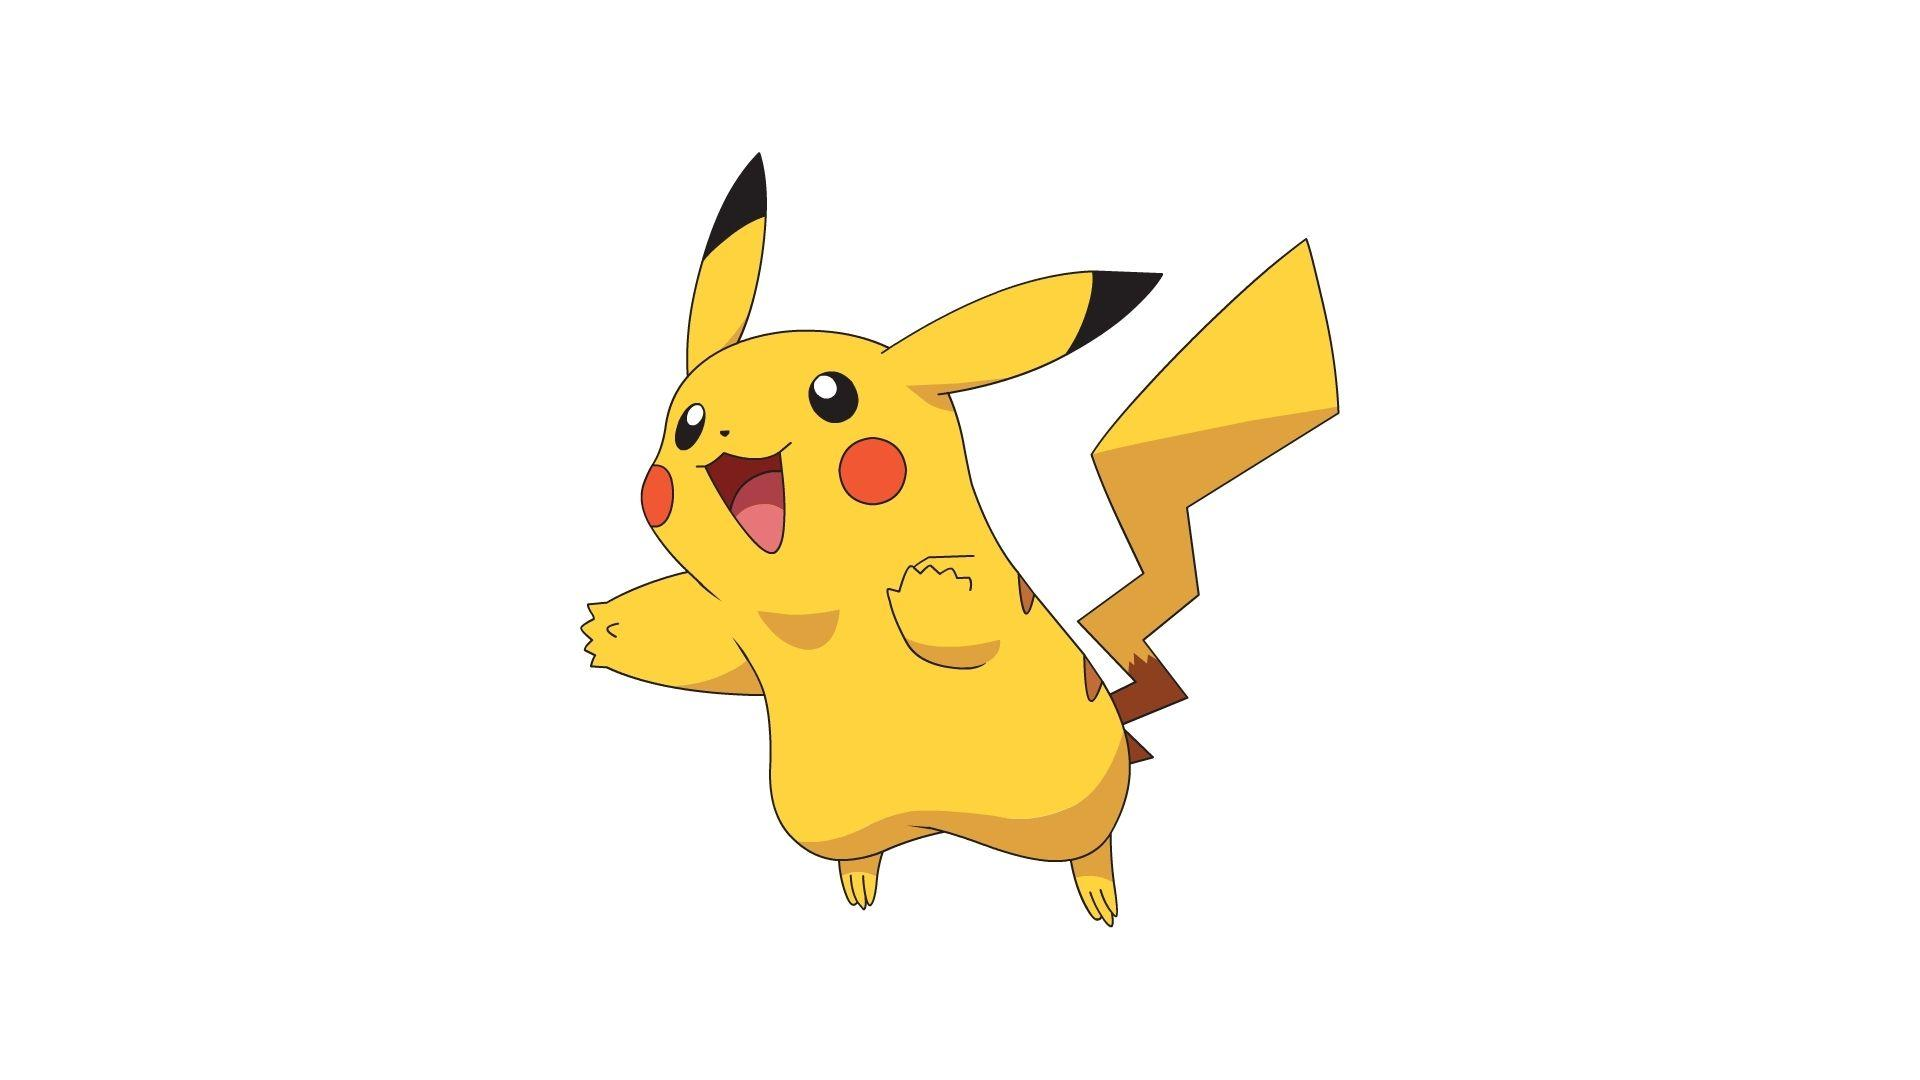 Animals For > Cute Pikachu Pokemon Wallpapers